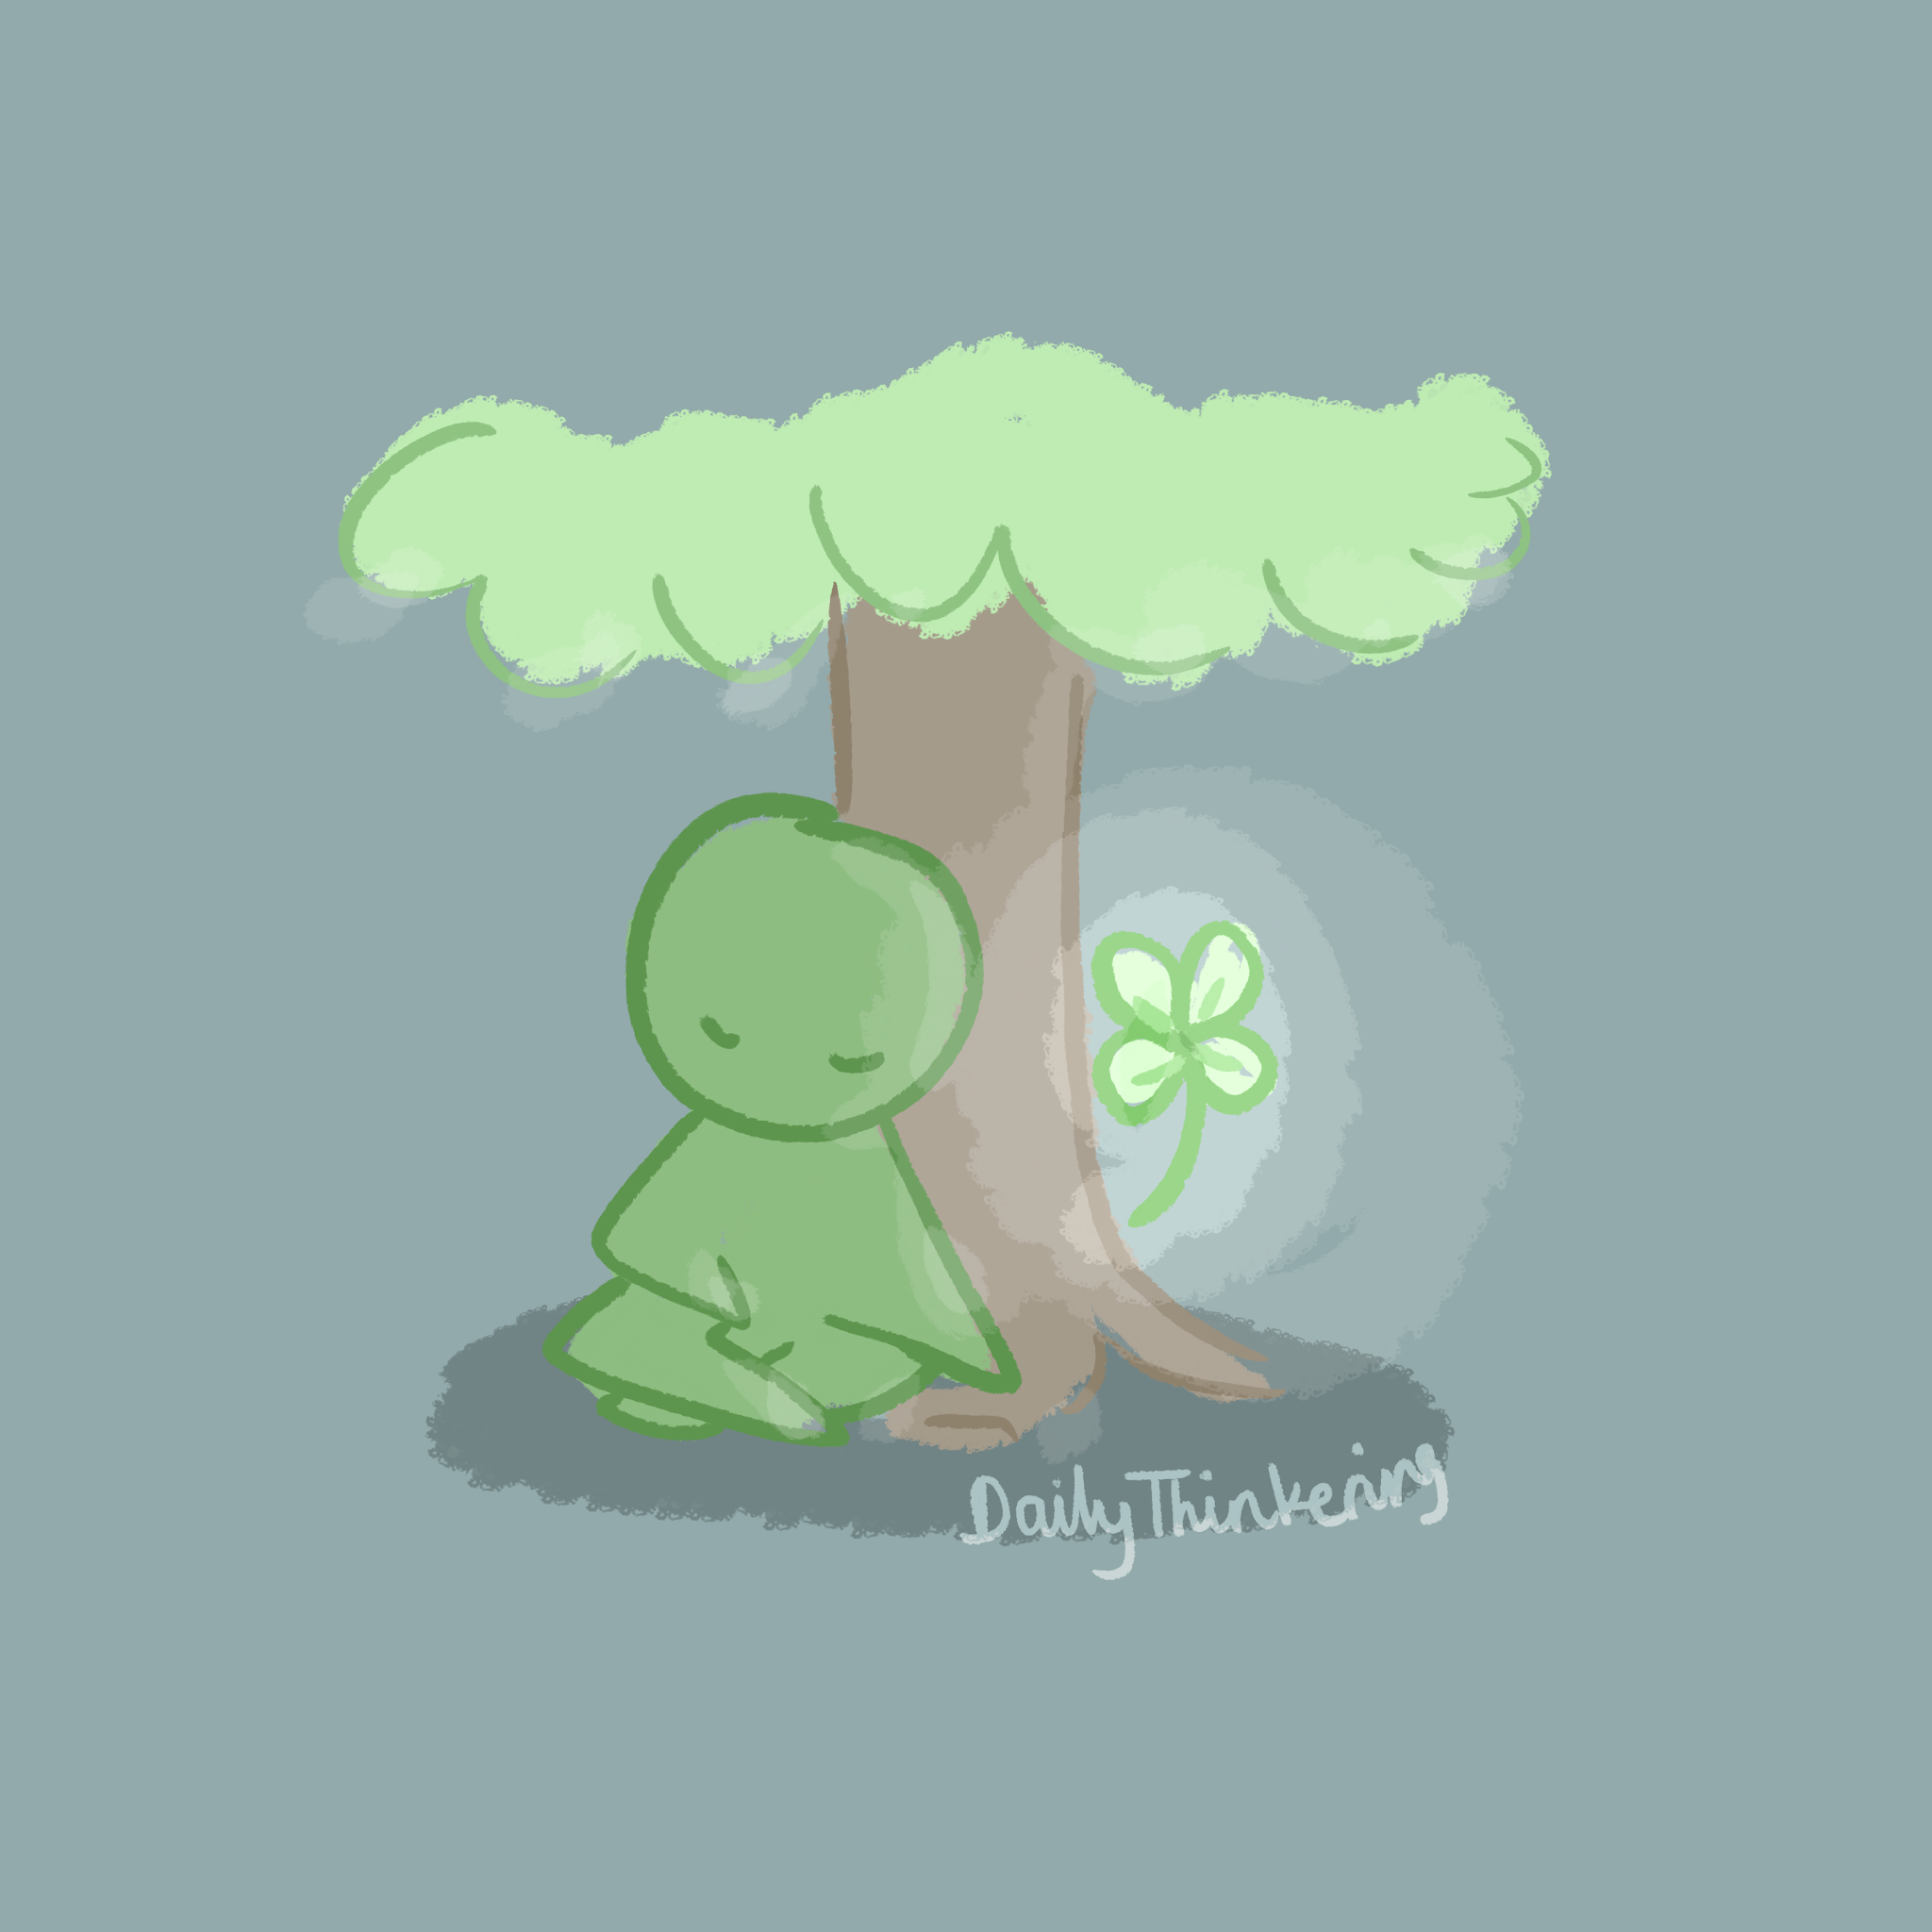 Person sitting next to their lucky clover friend by a tree